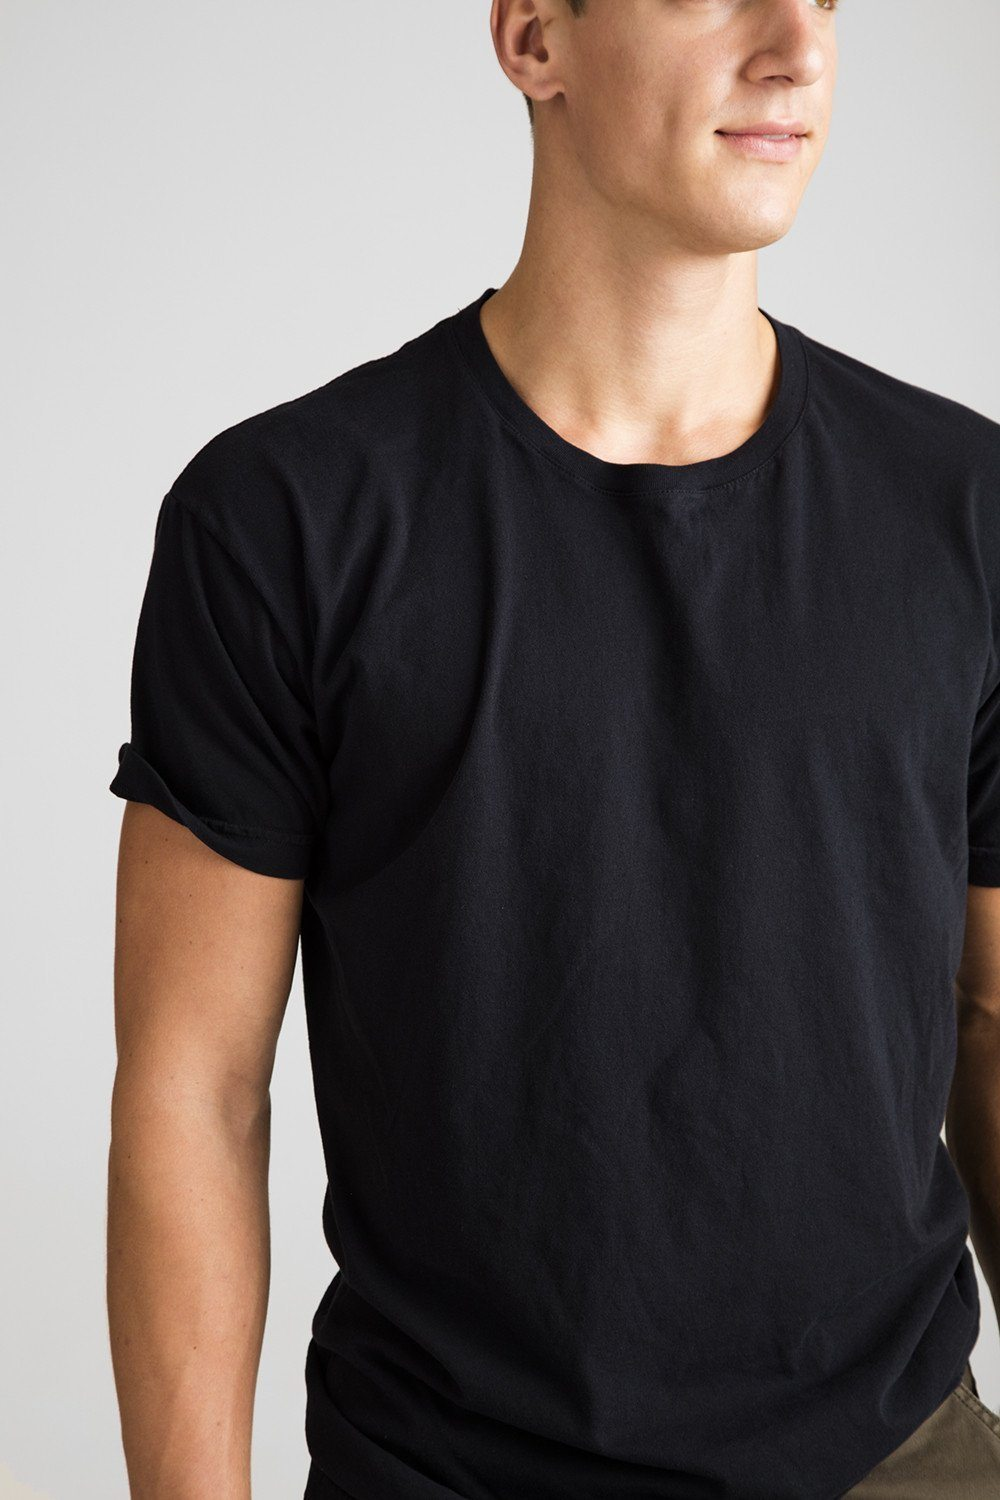 USA Knit Crew Neck T-Shirt - Black - grown&sewn